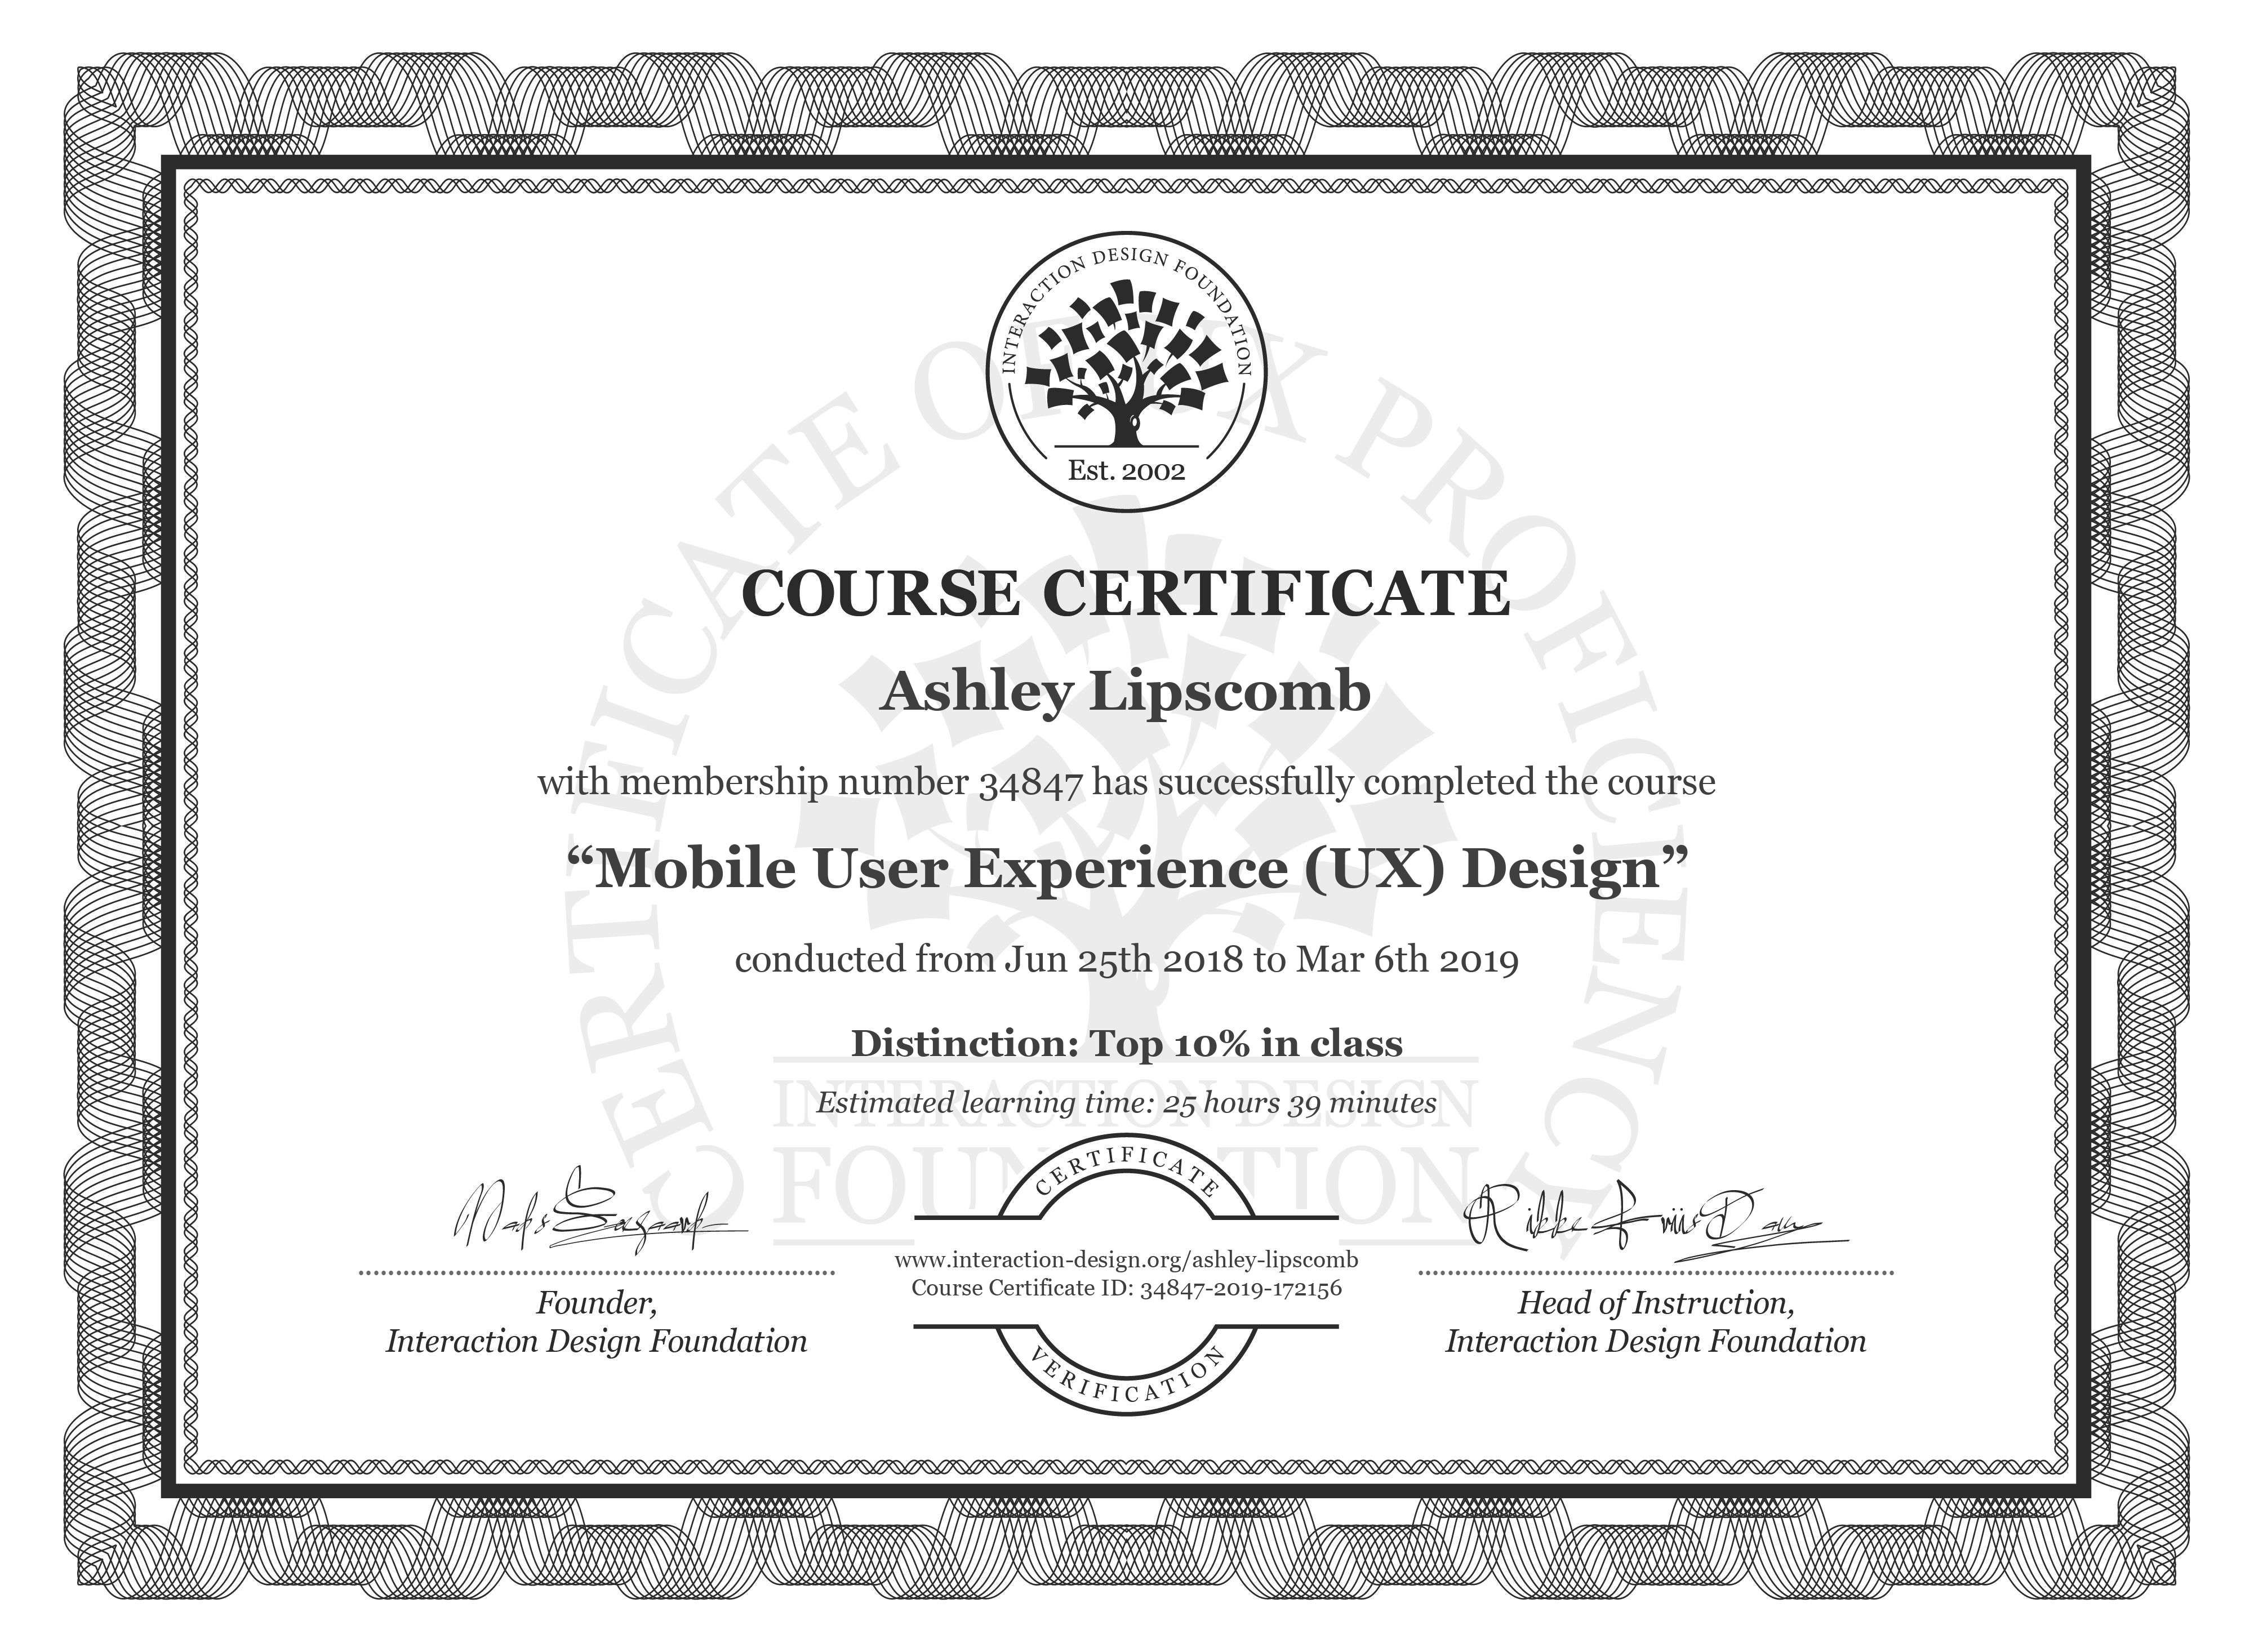 Ashley Lipscomb: Course Certificate - Mobile User Experience (UX) Design